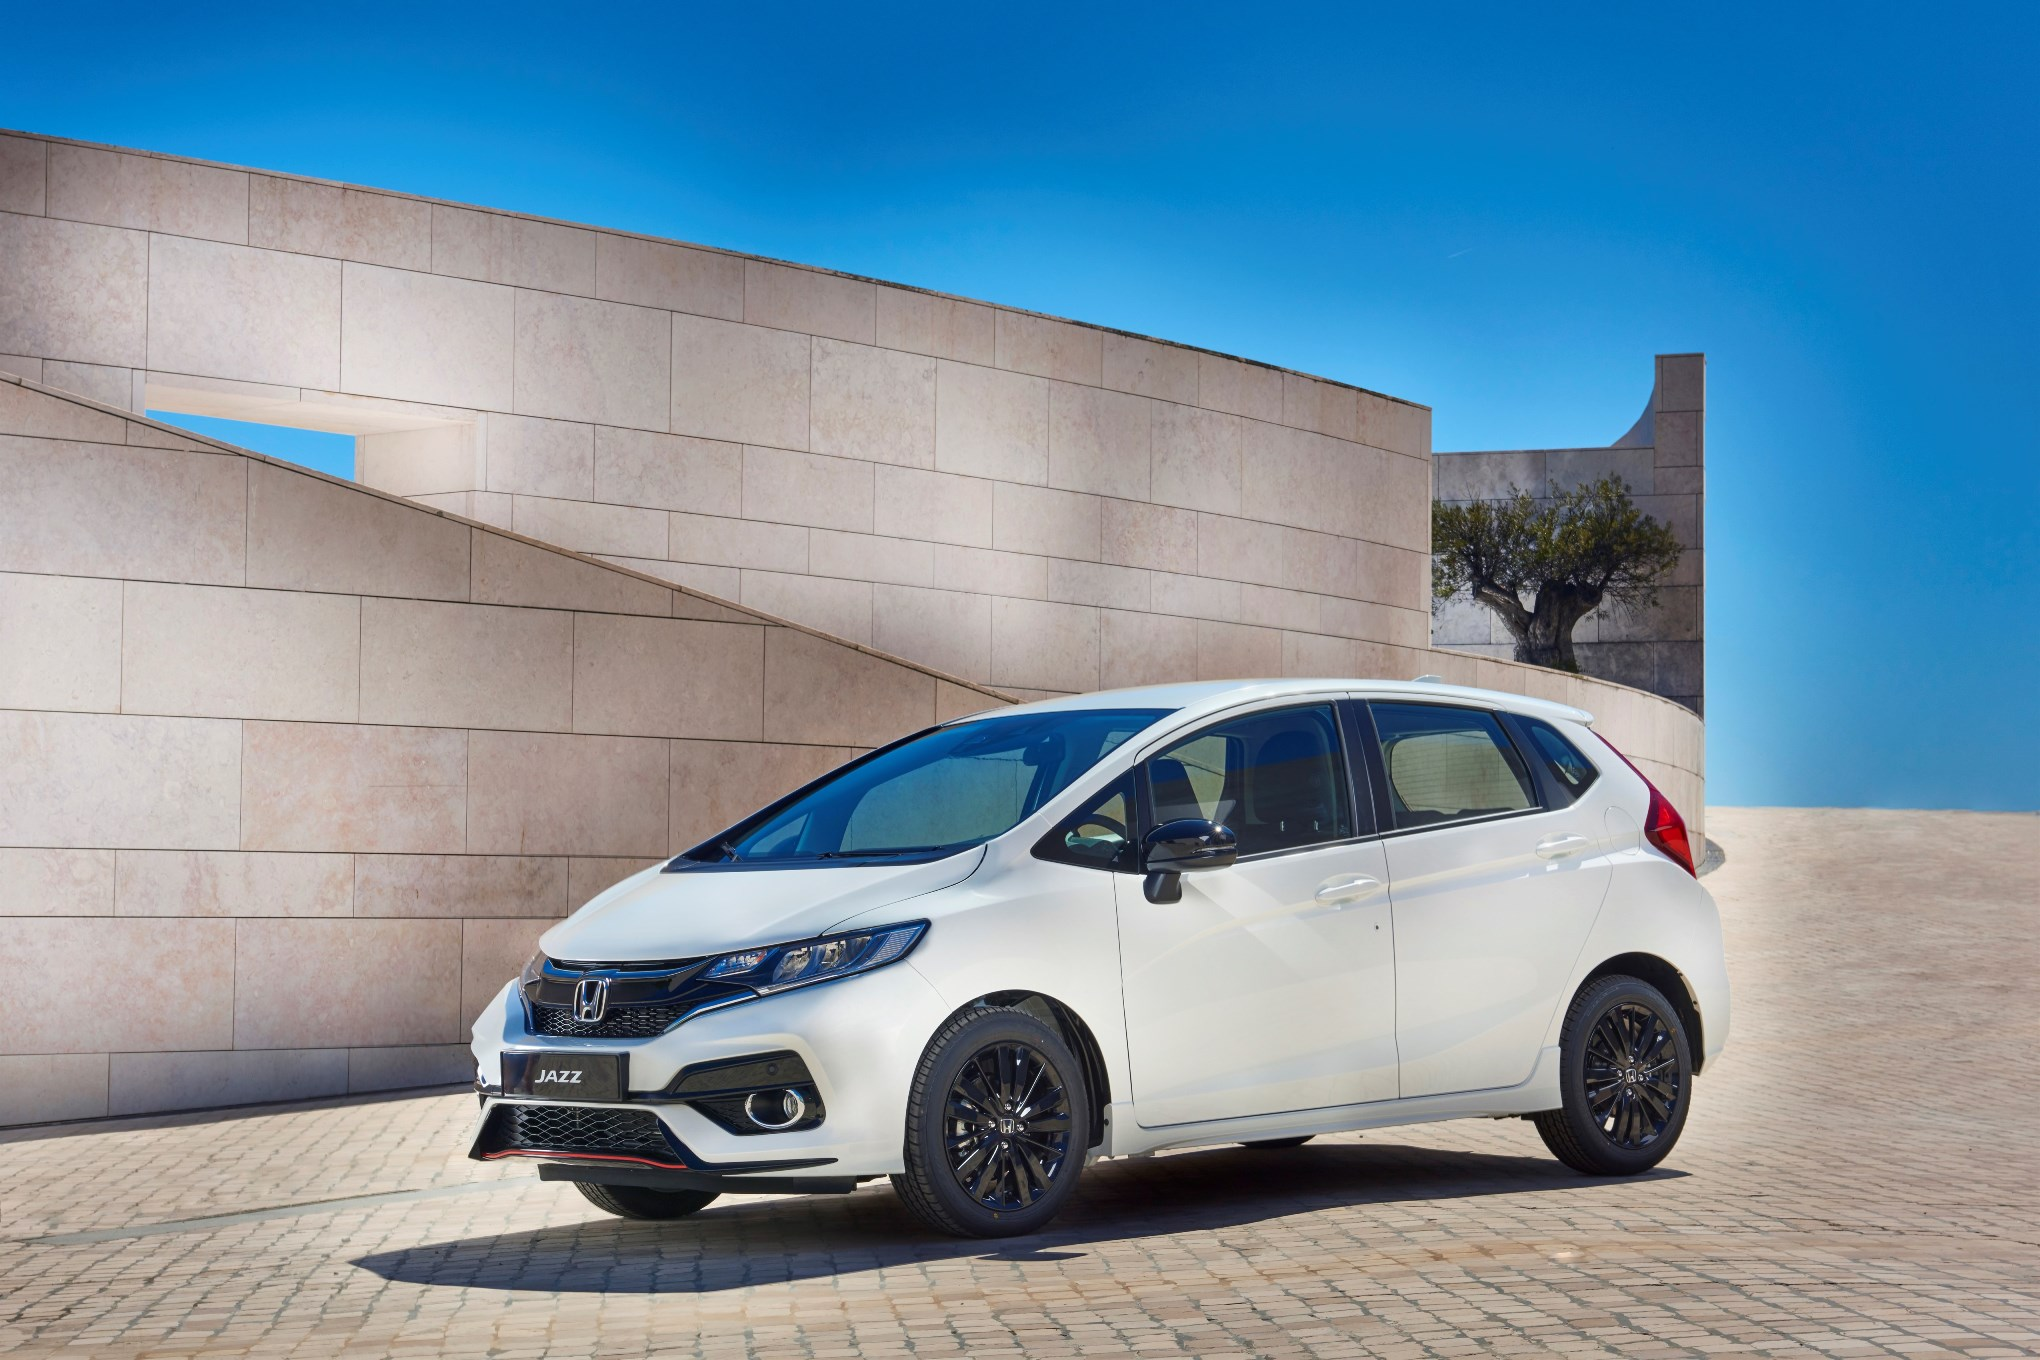 Honda Jazz Facelift Unveiled Ahead Of Debut